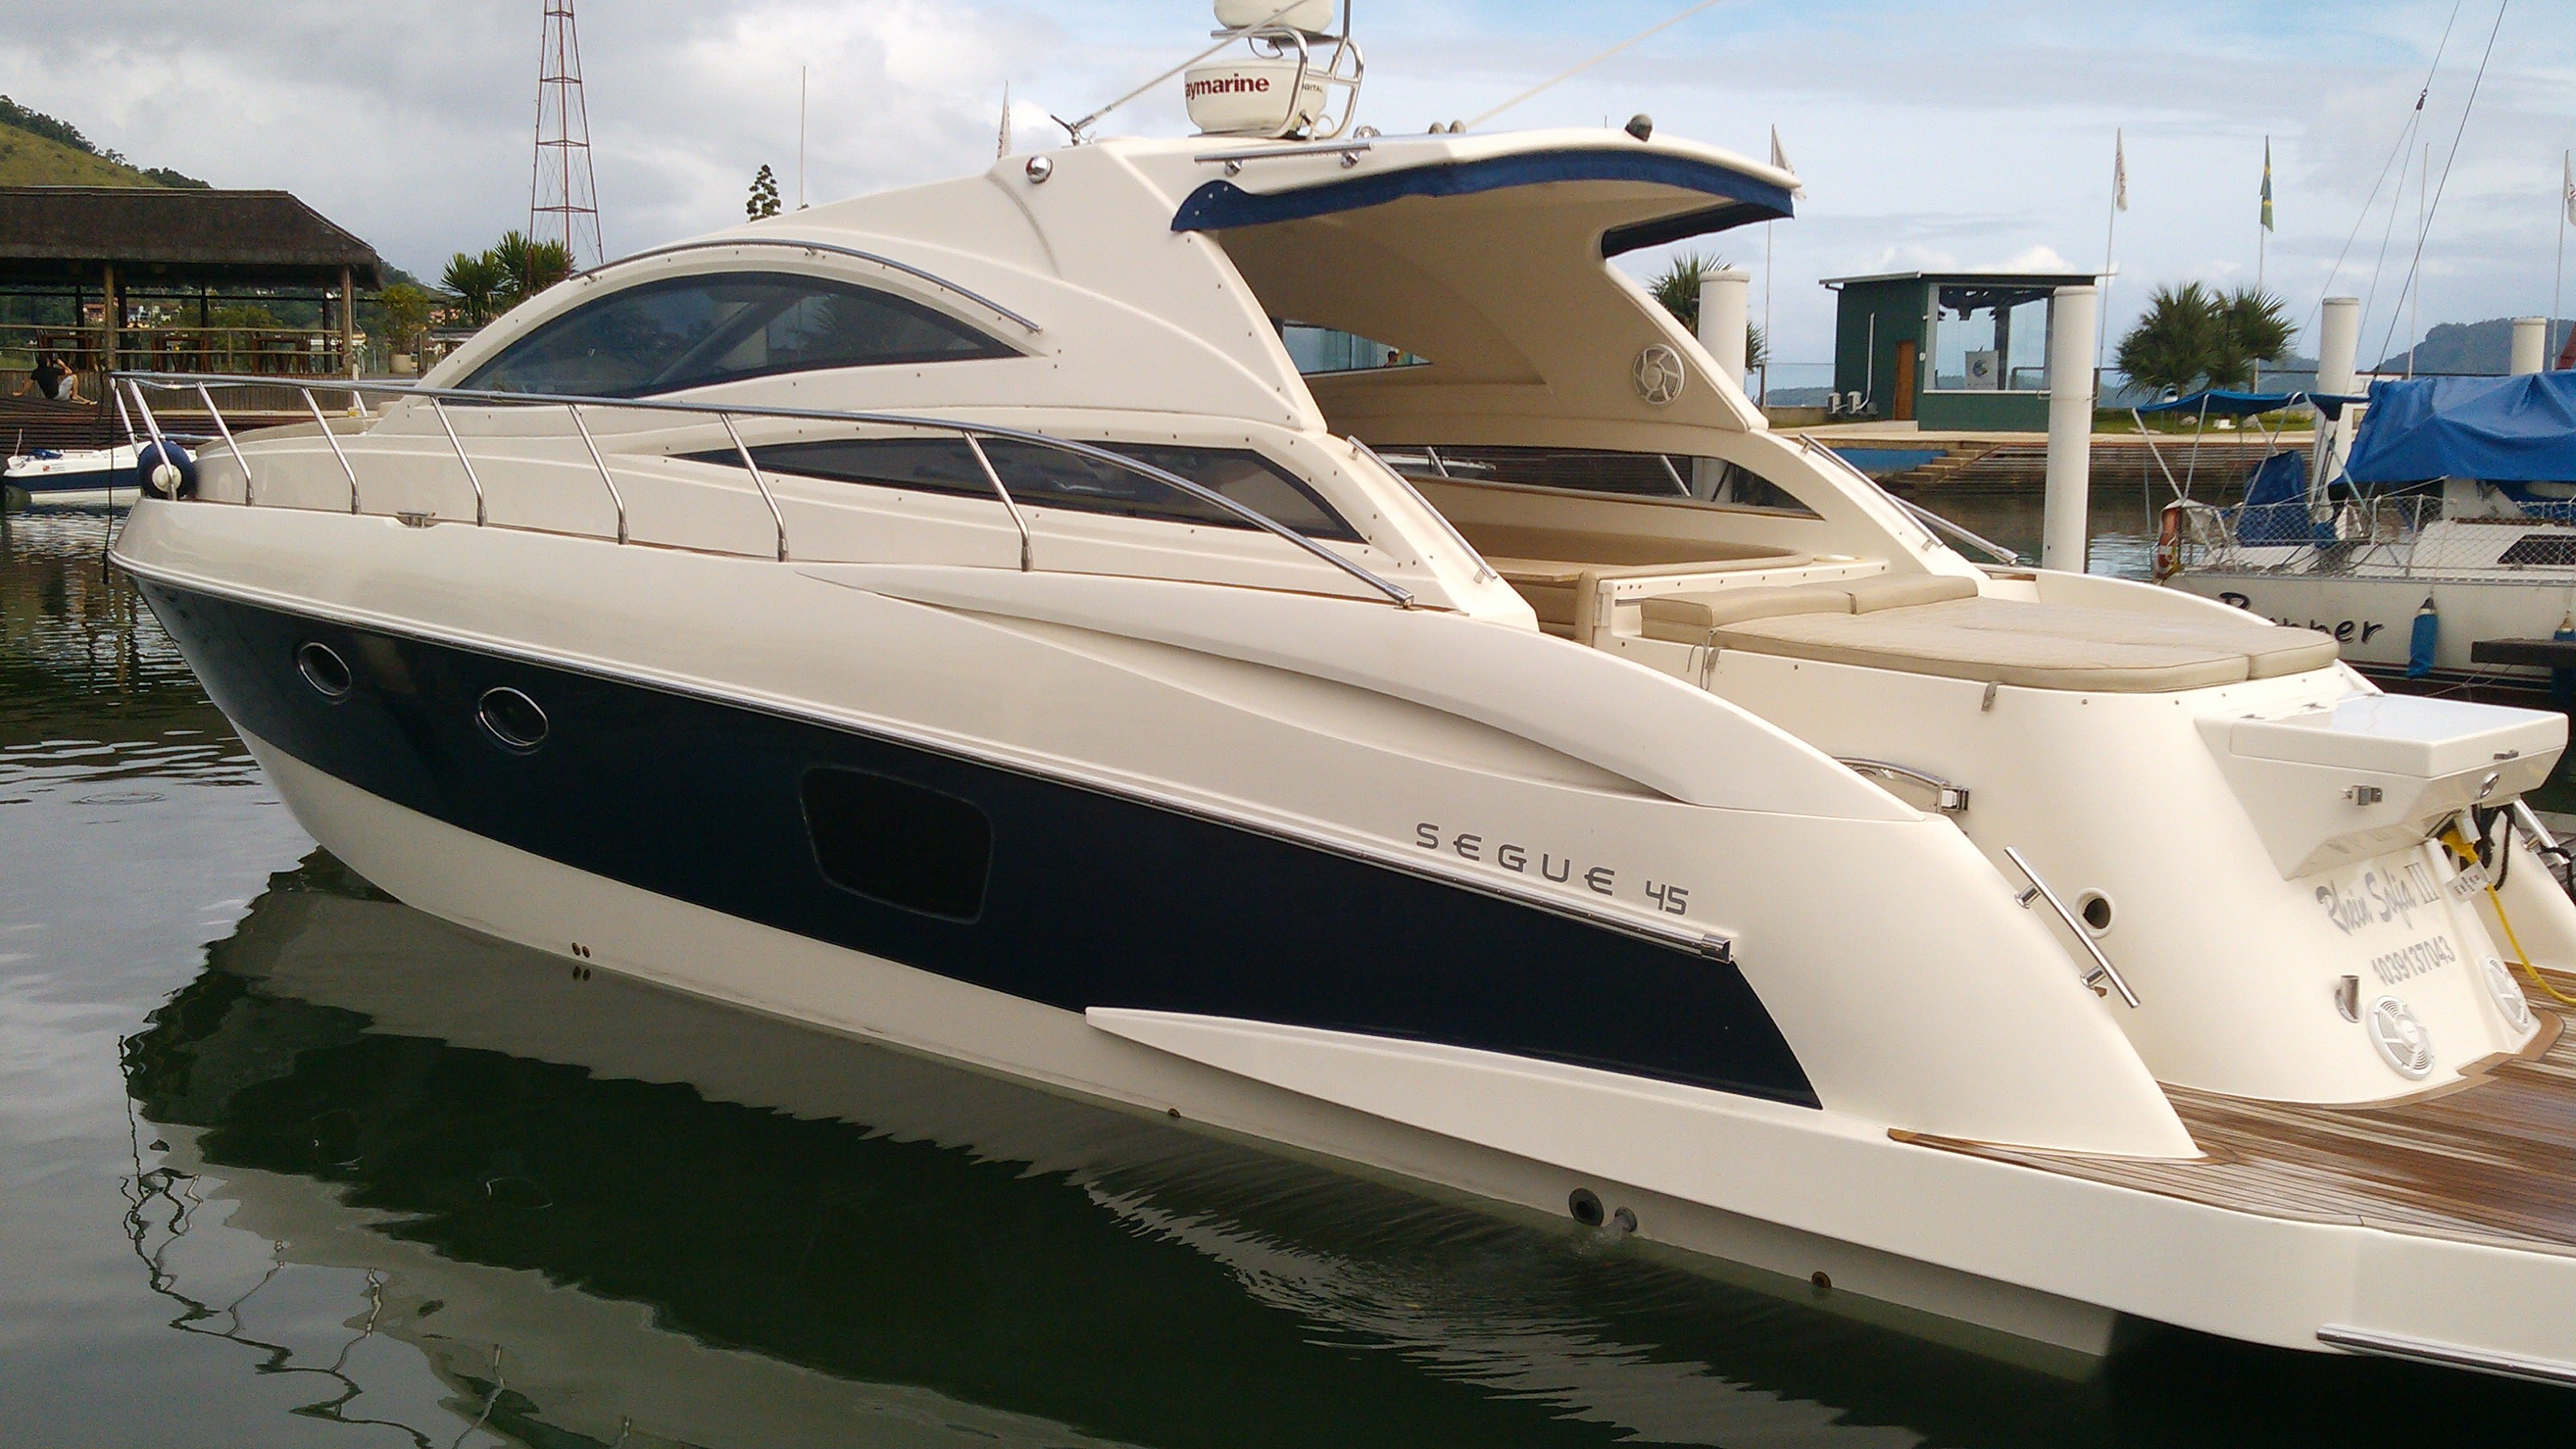 Segue Yachts Segue 45 HT